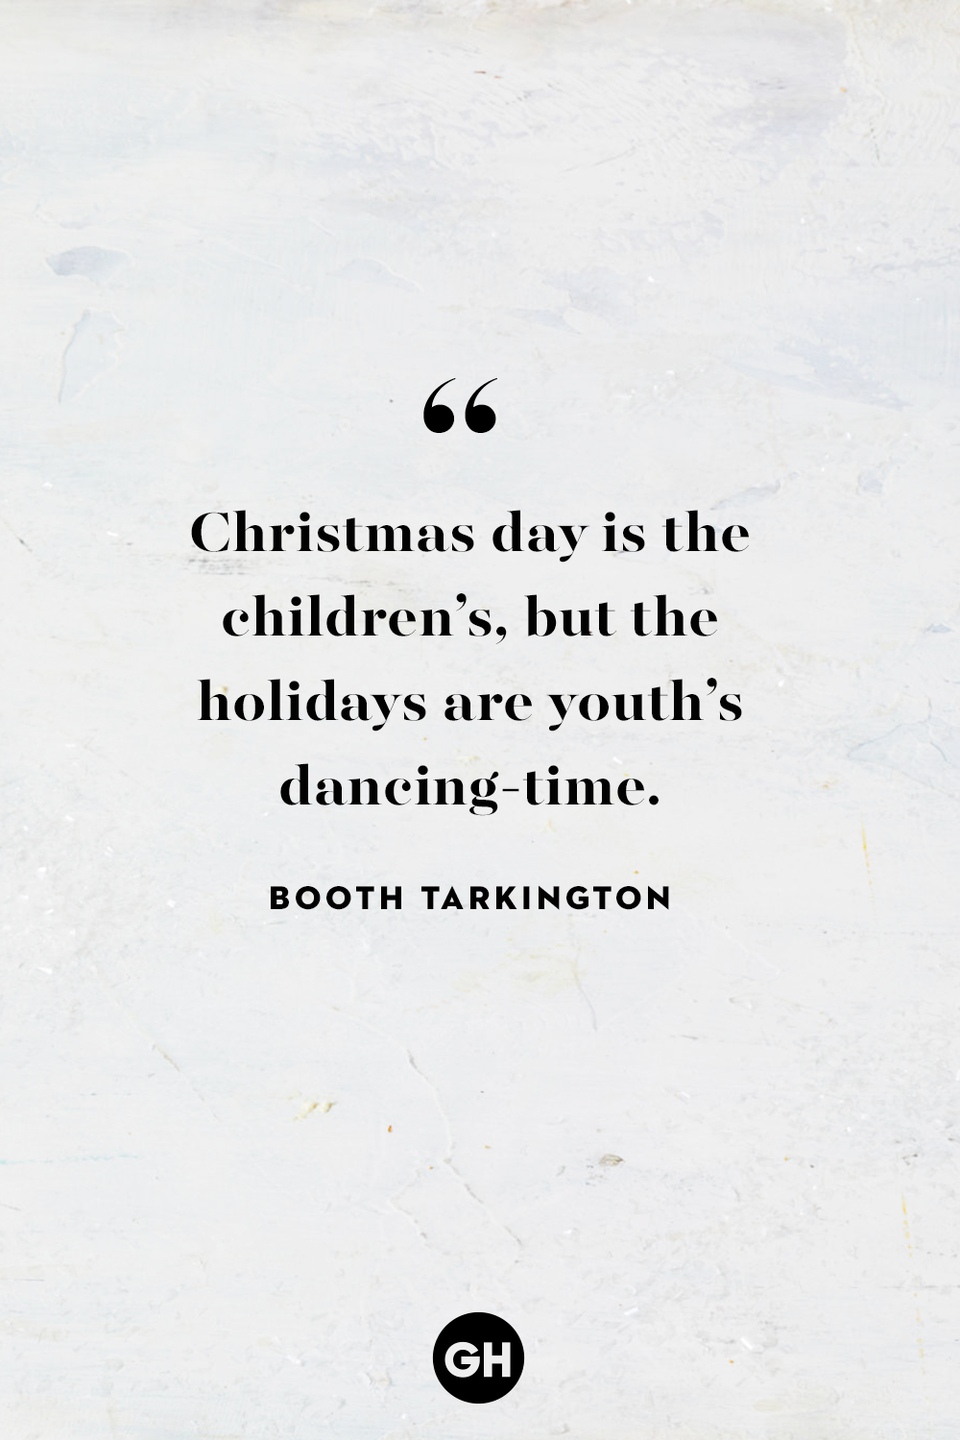 <p>Christmas day is the children's, but the holidays are youth's dancing-time.</p>